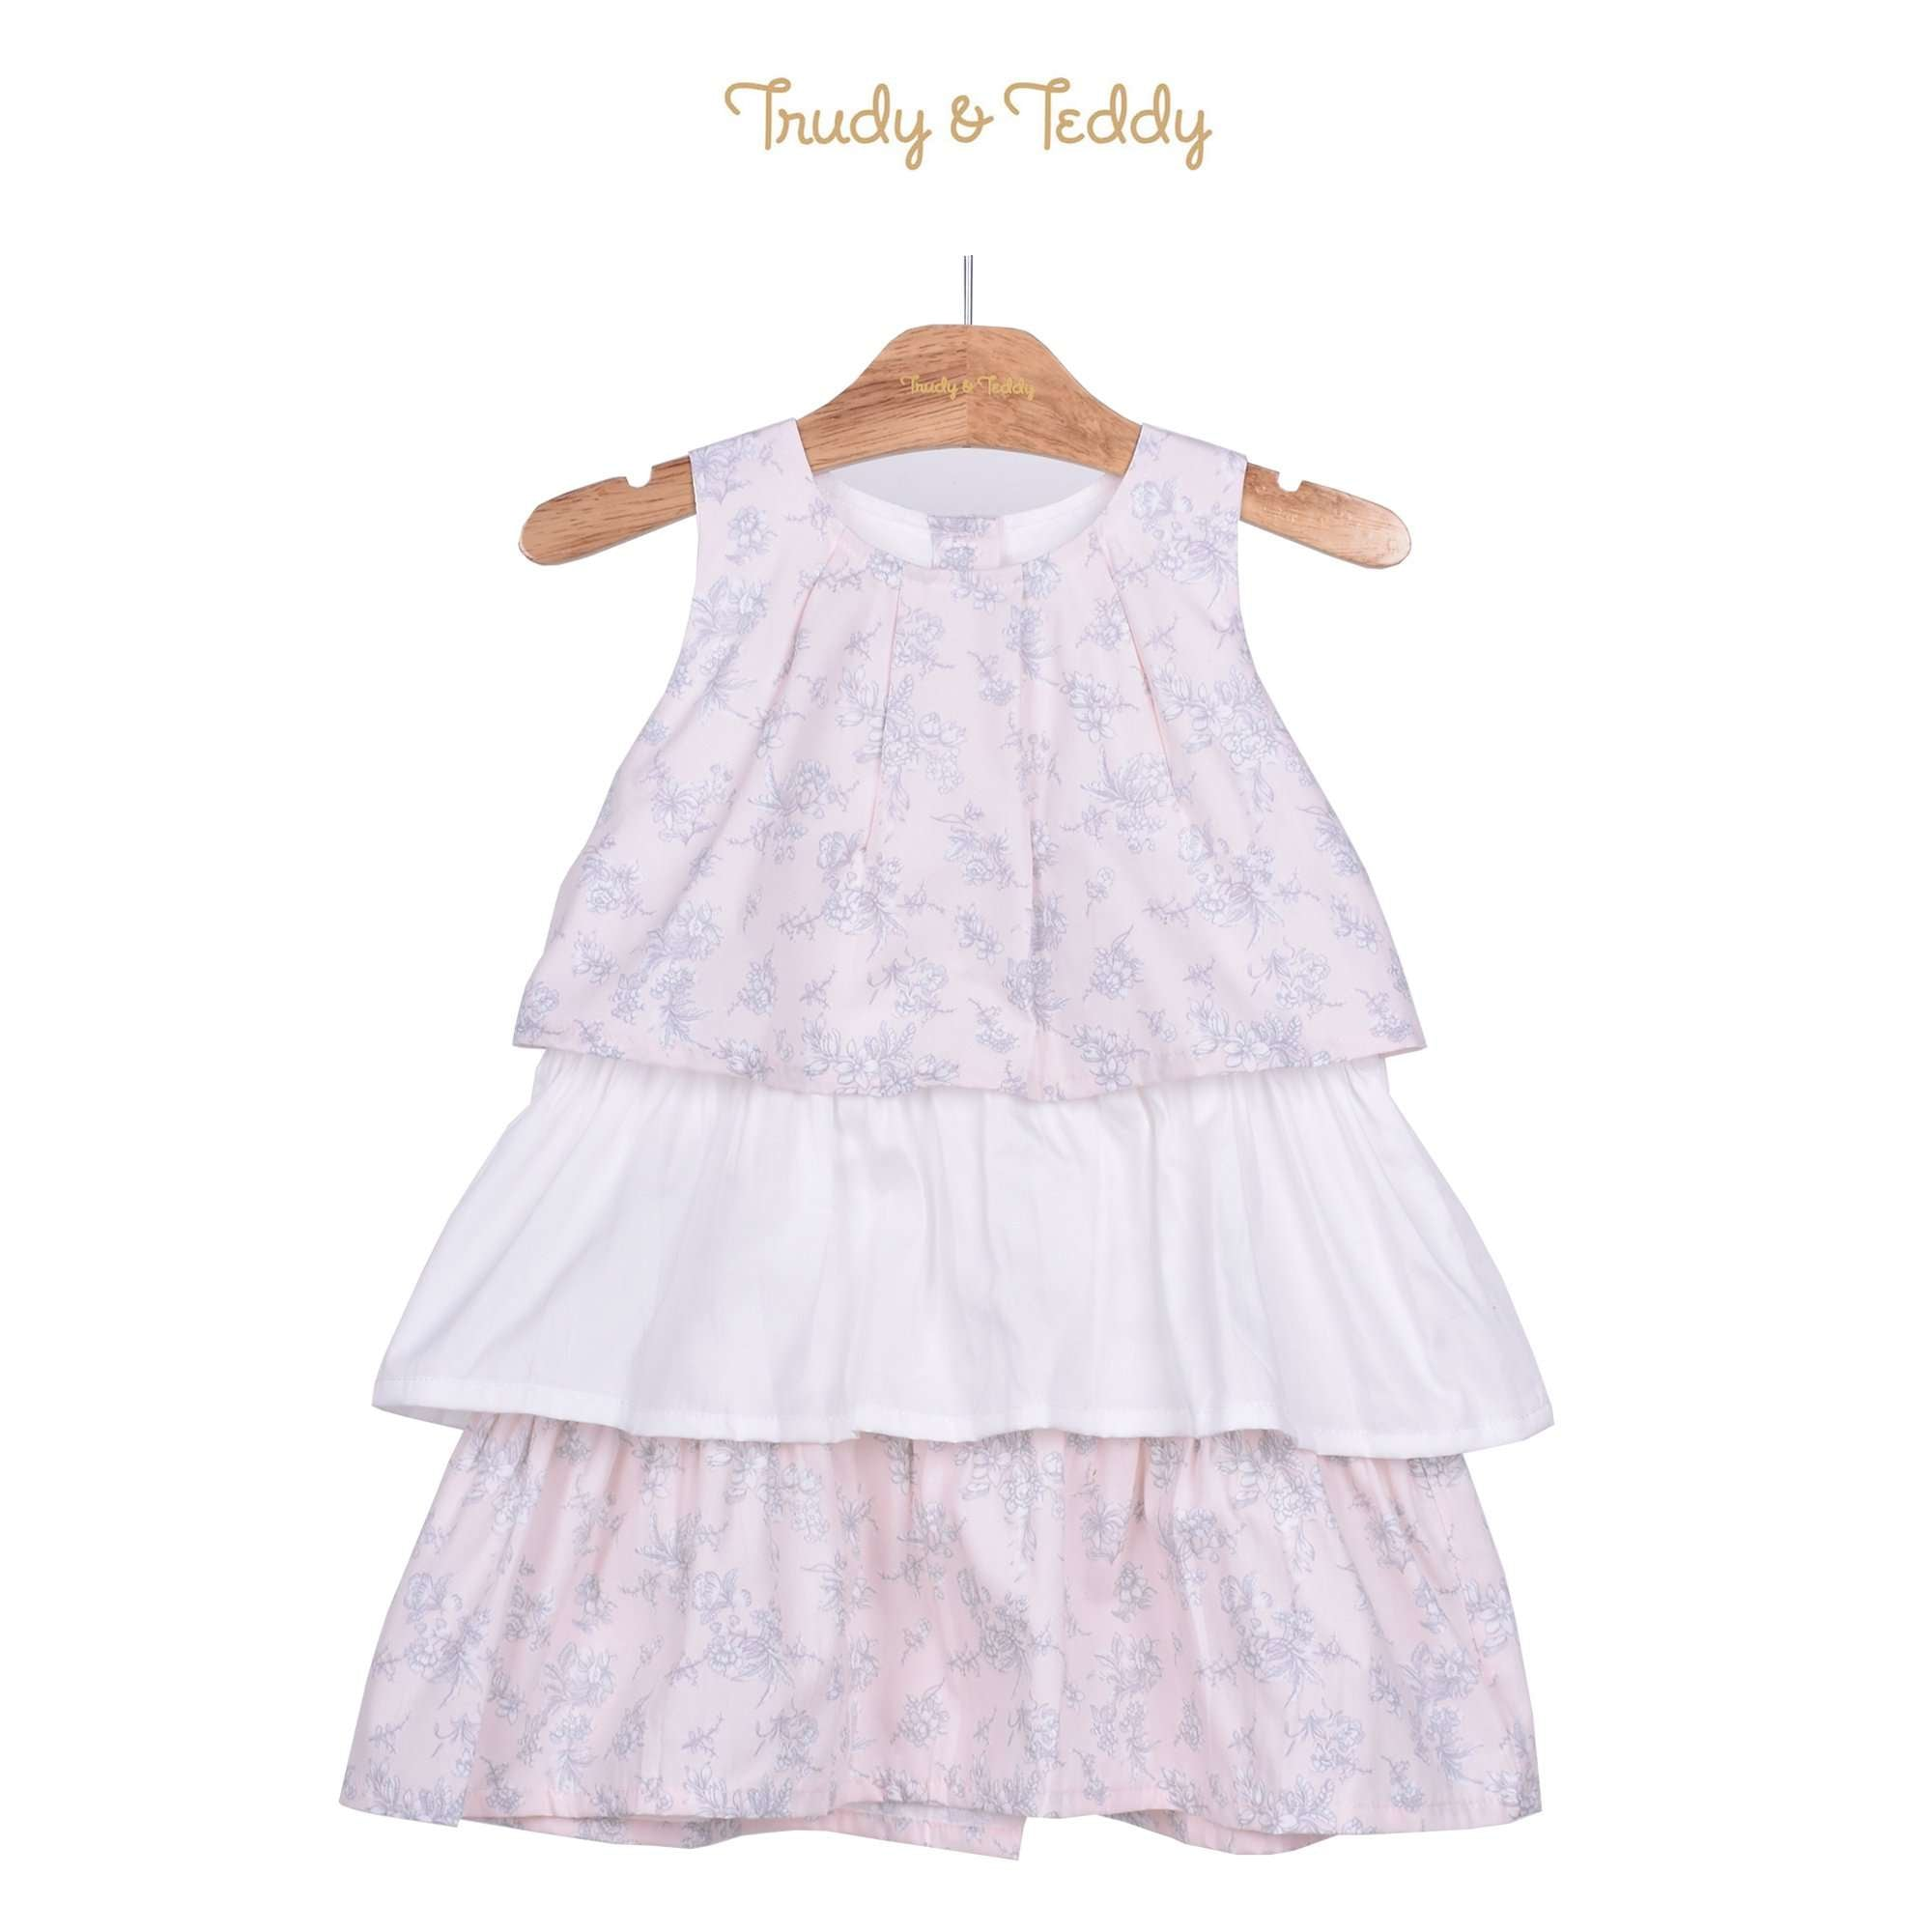 Trudy & Teddy Toddler Girl Sleeveless Dress - Light Pink 815144-311 : Buy Trudy & Teddy online at CMG.MY